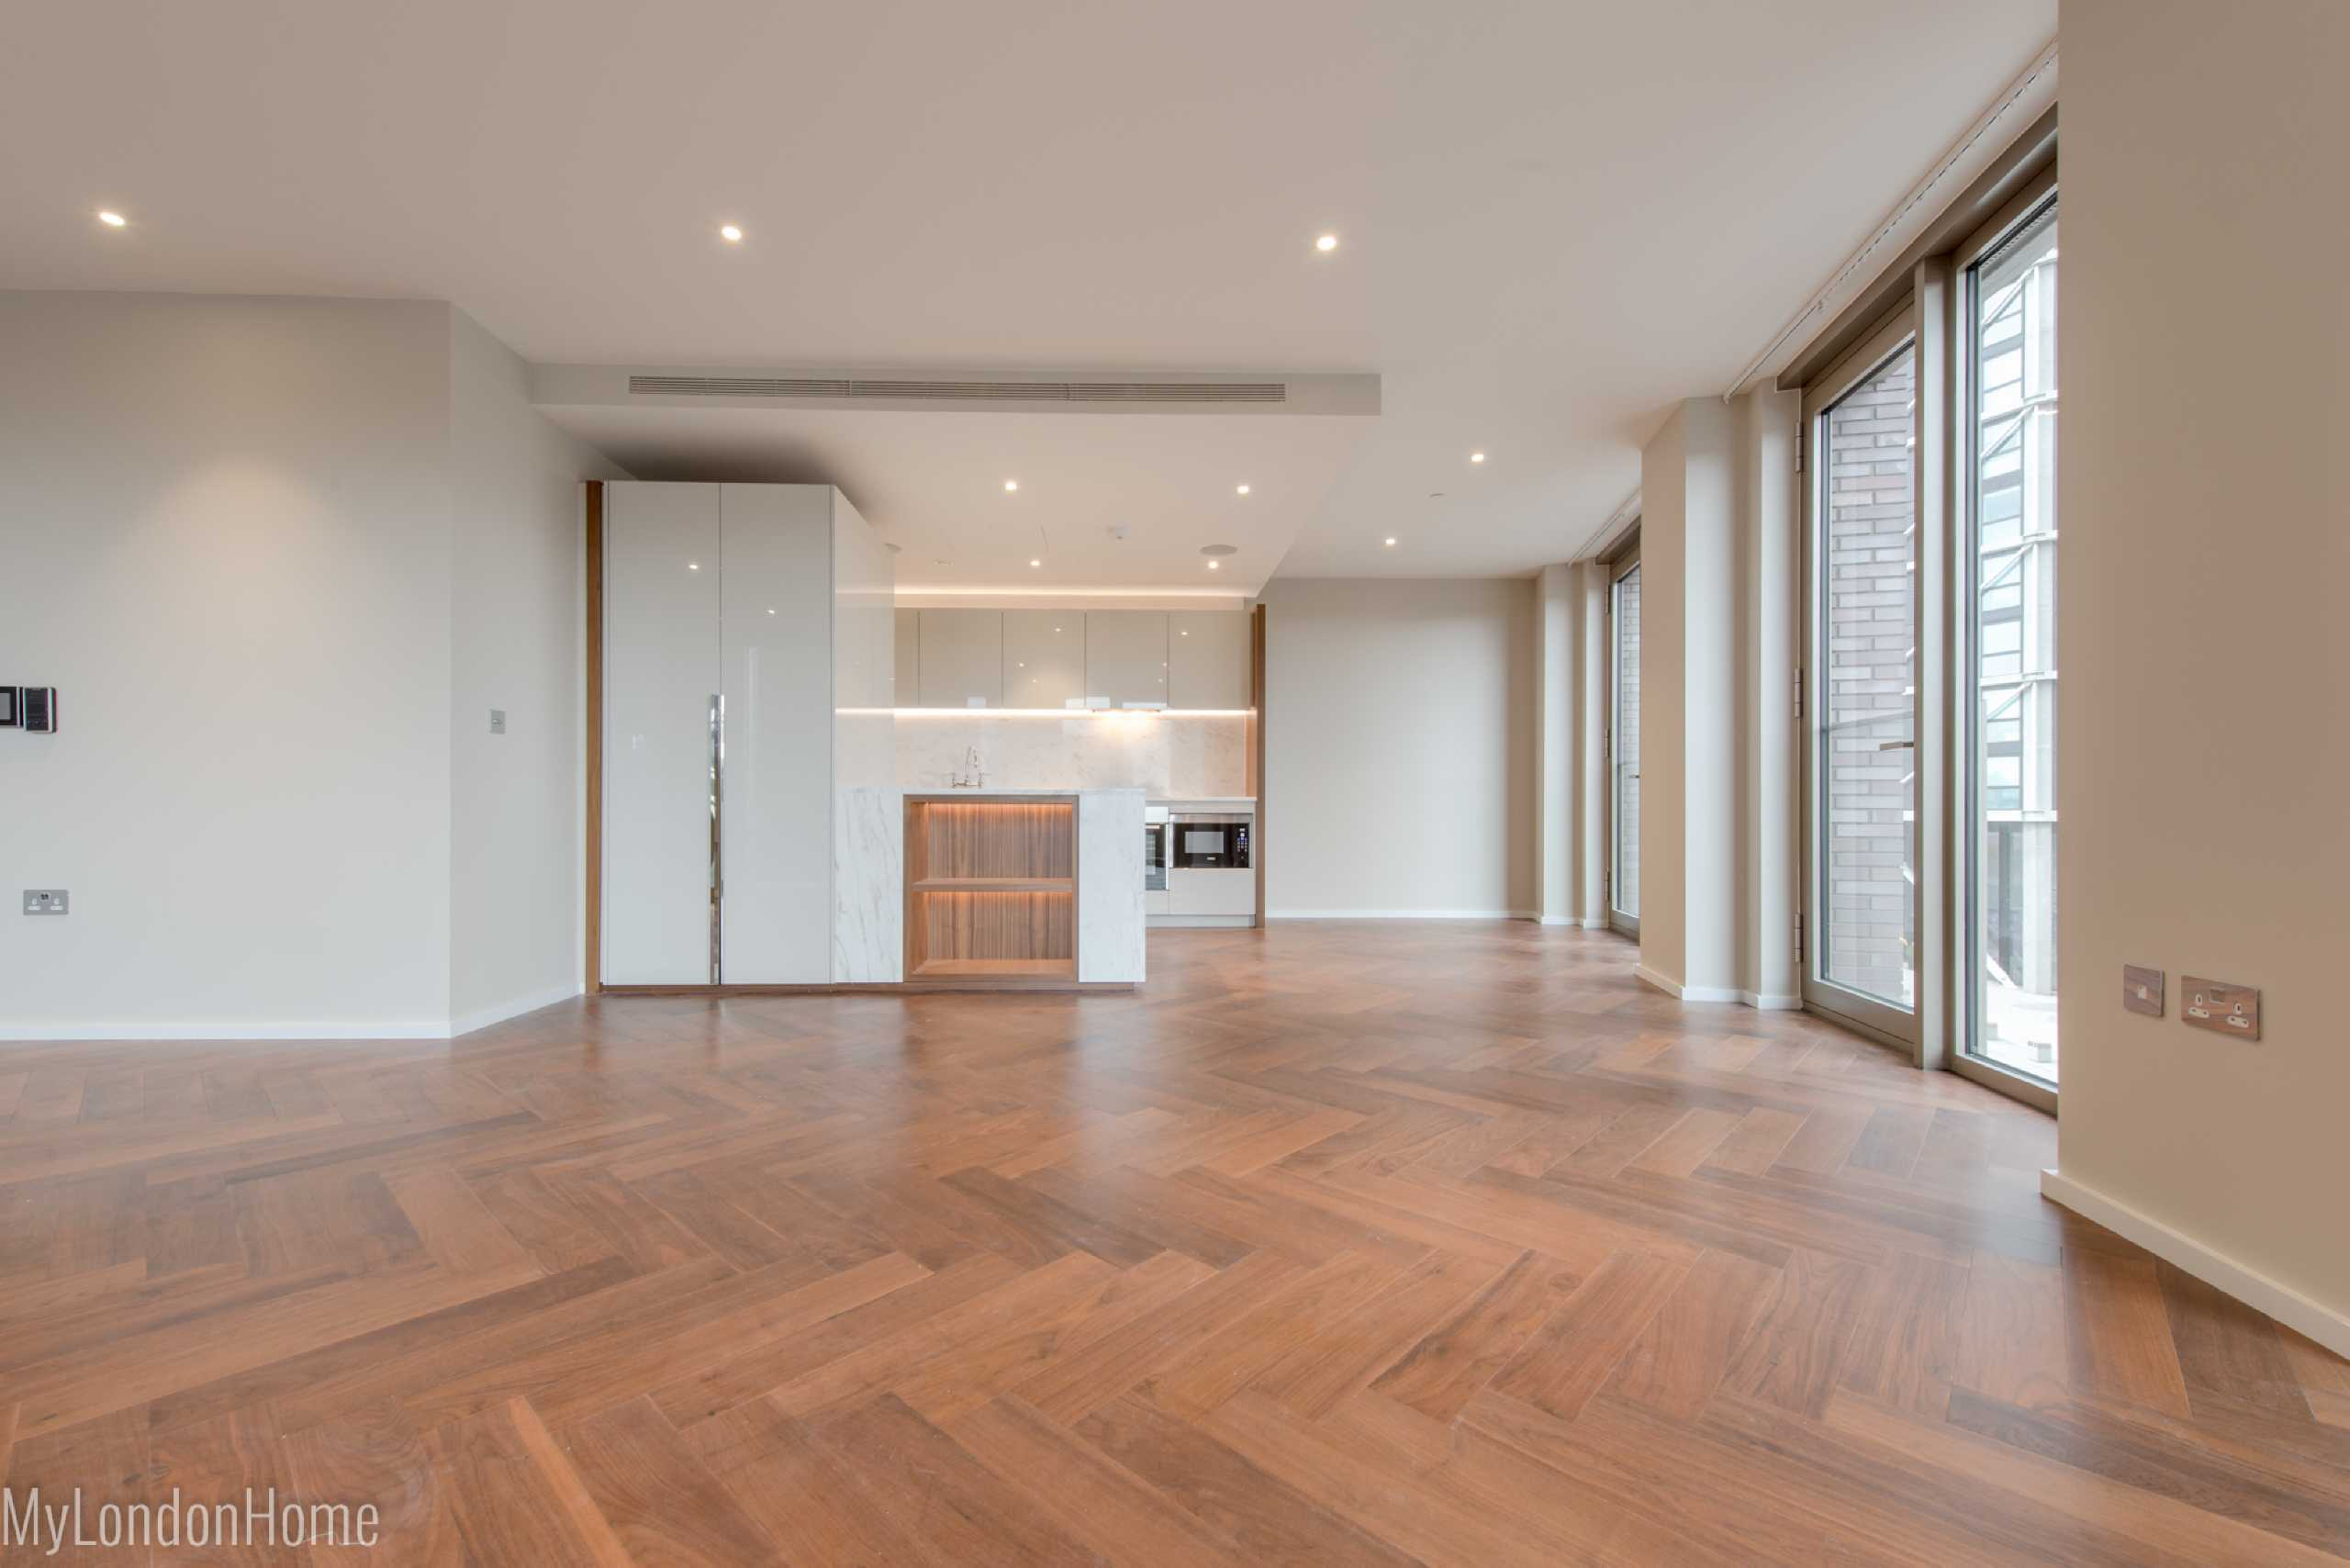 3 Bedrooms Apartment Flat for sale in B29, Embassy Gardens, Vauxhall, London, SW11